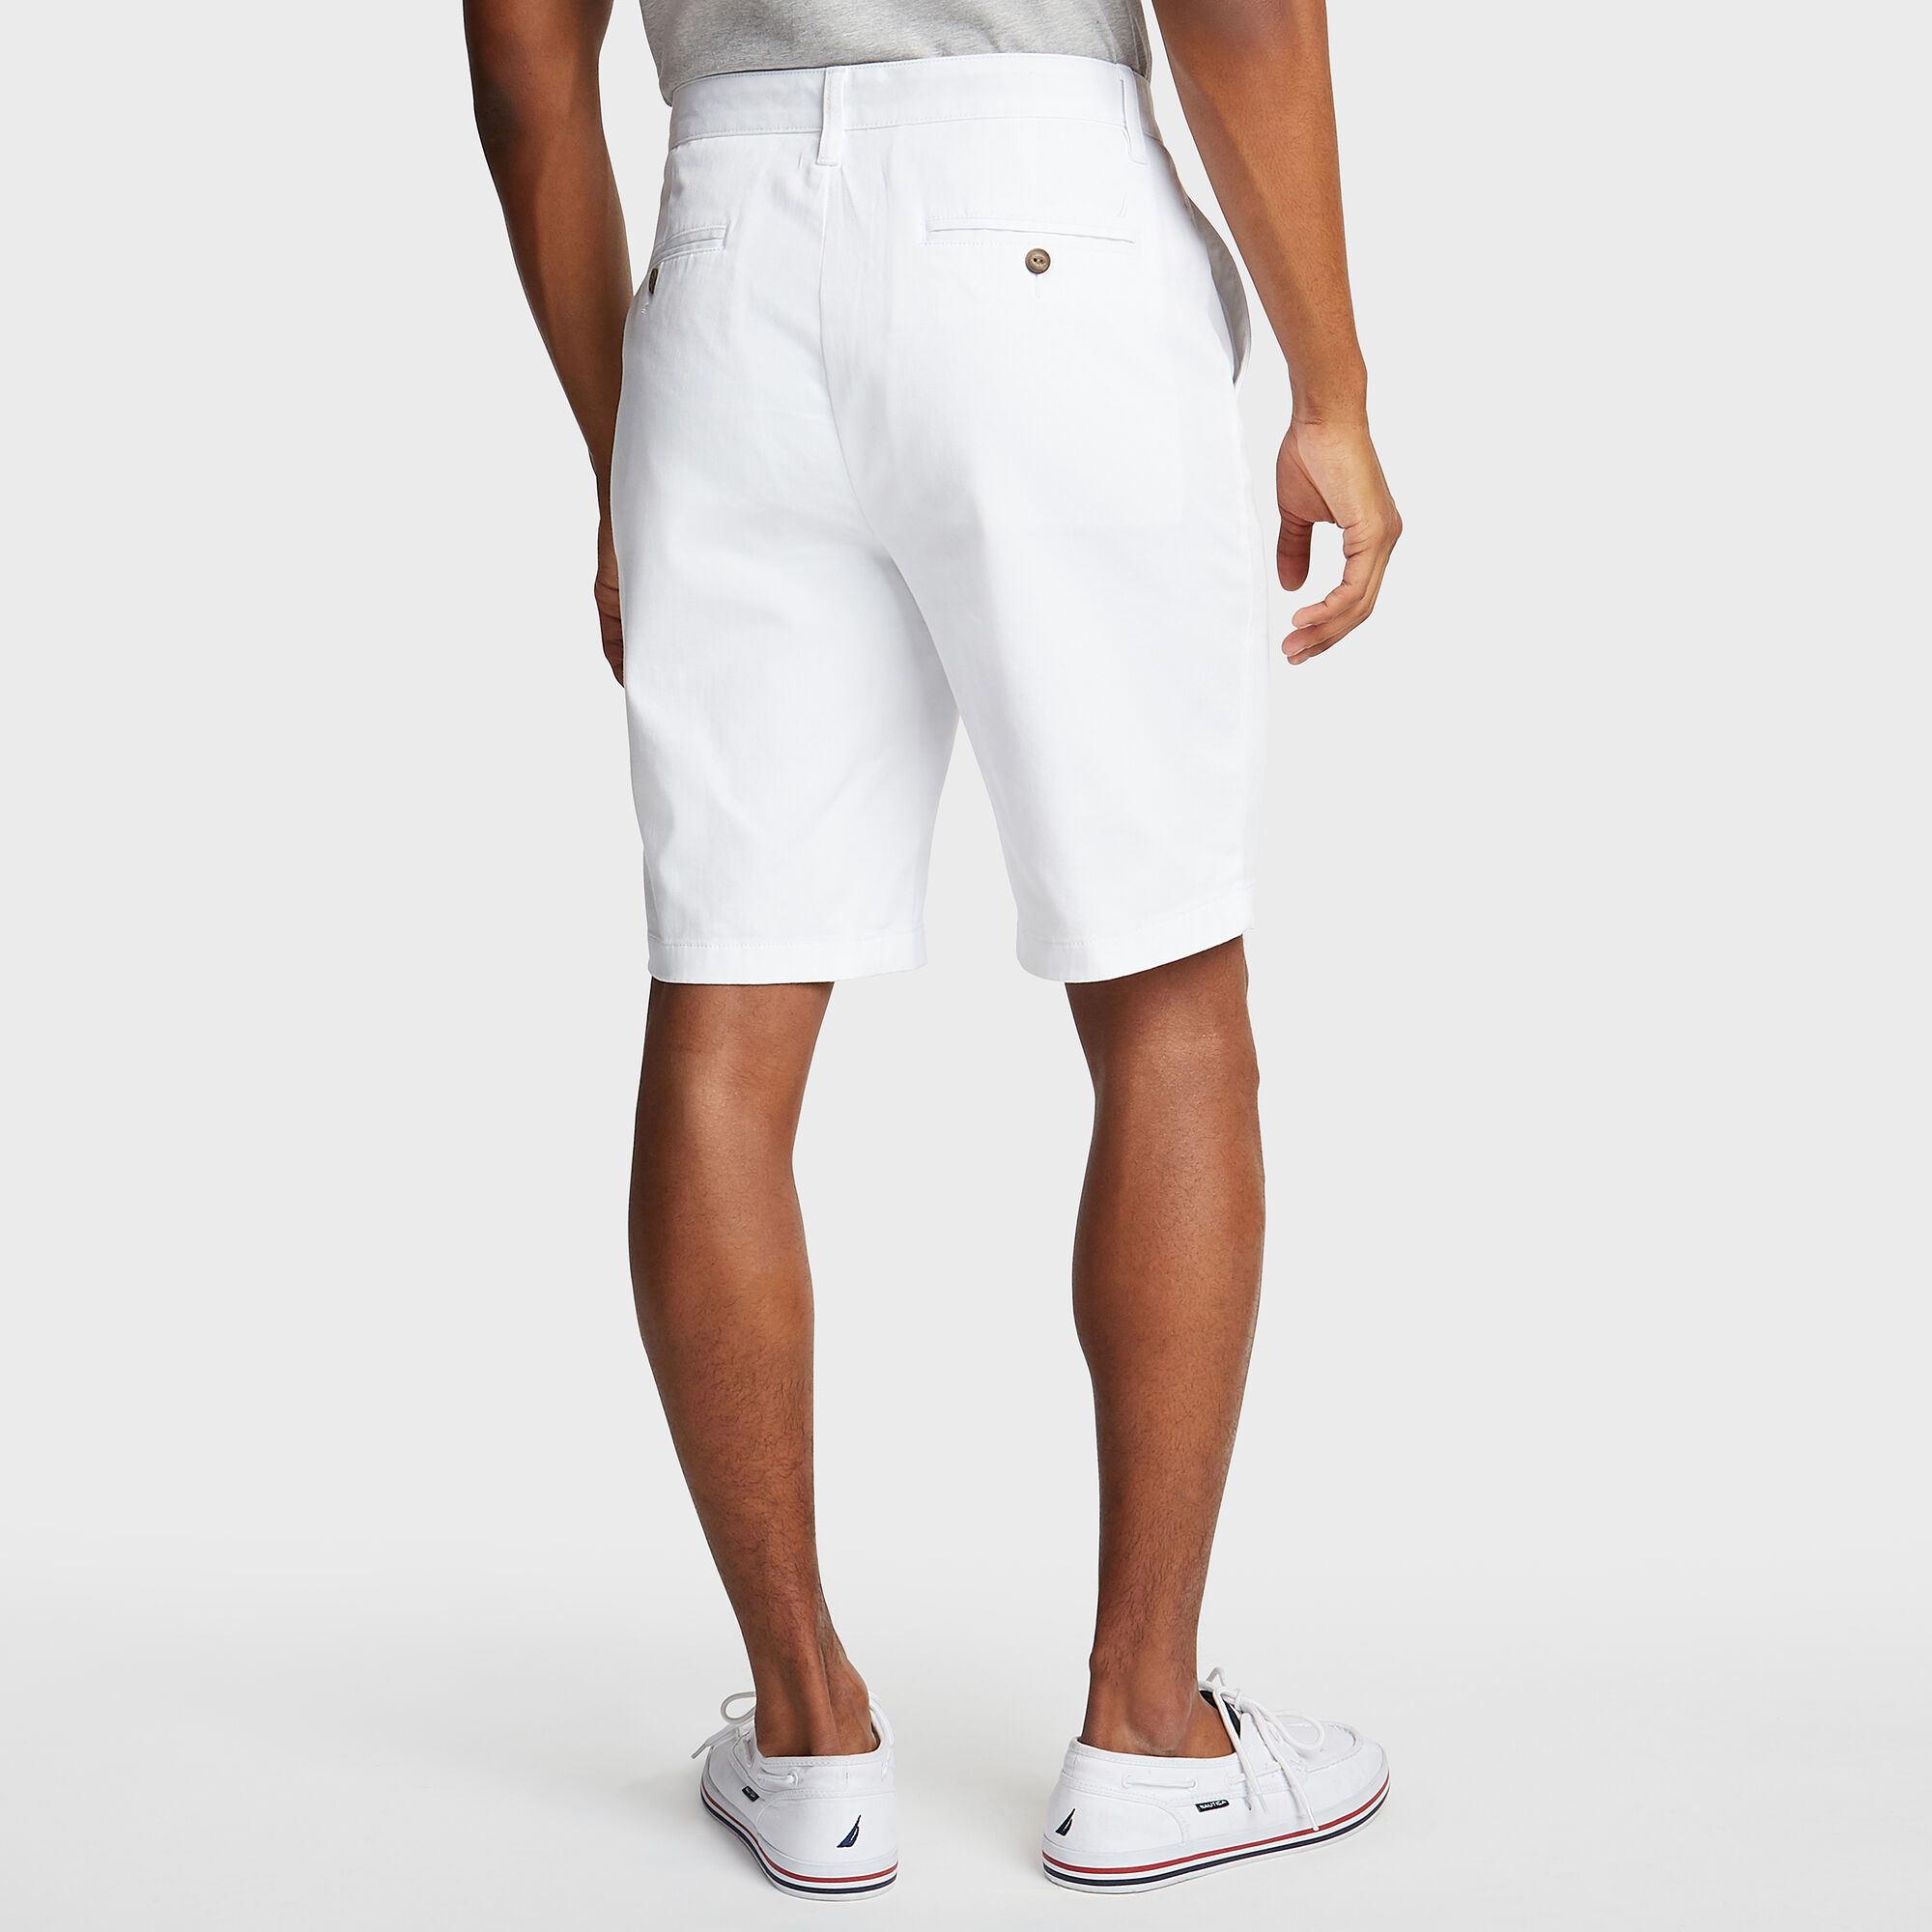 Nautica-Mens-10-034-Classic-Fit-Deck-Shorts-With-Stretch thumbnail 11